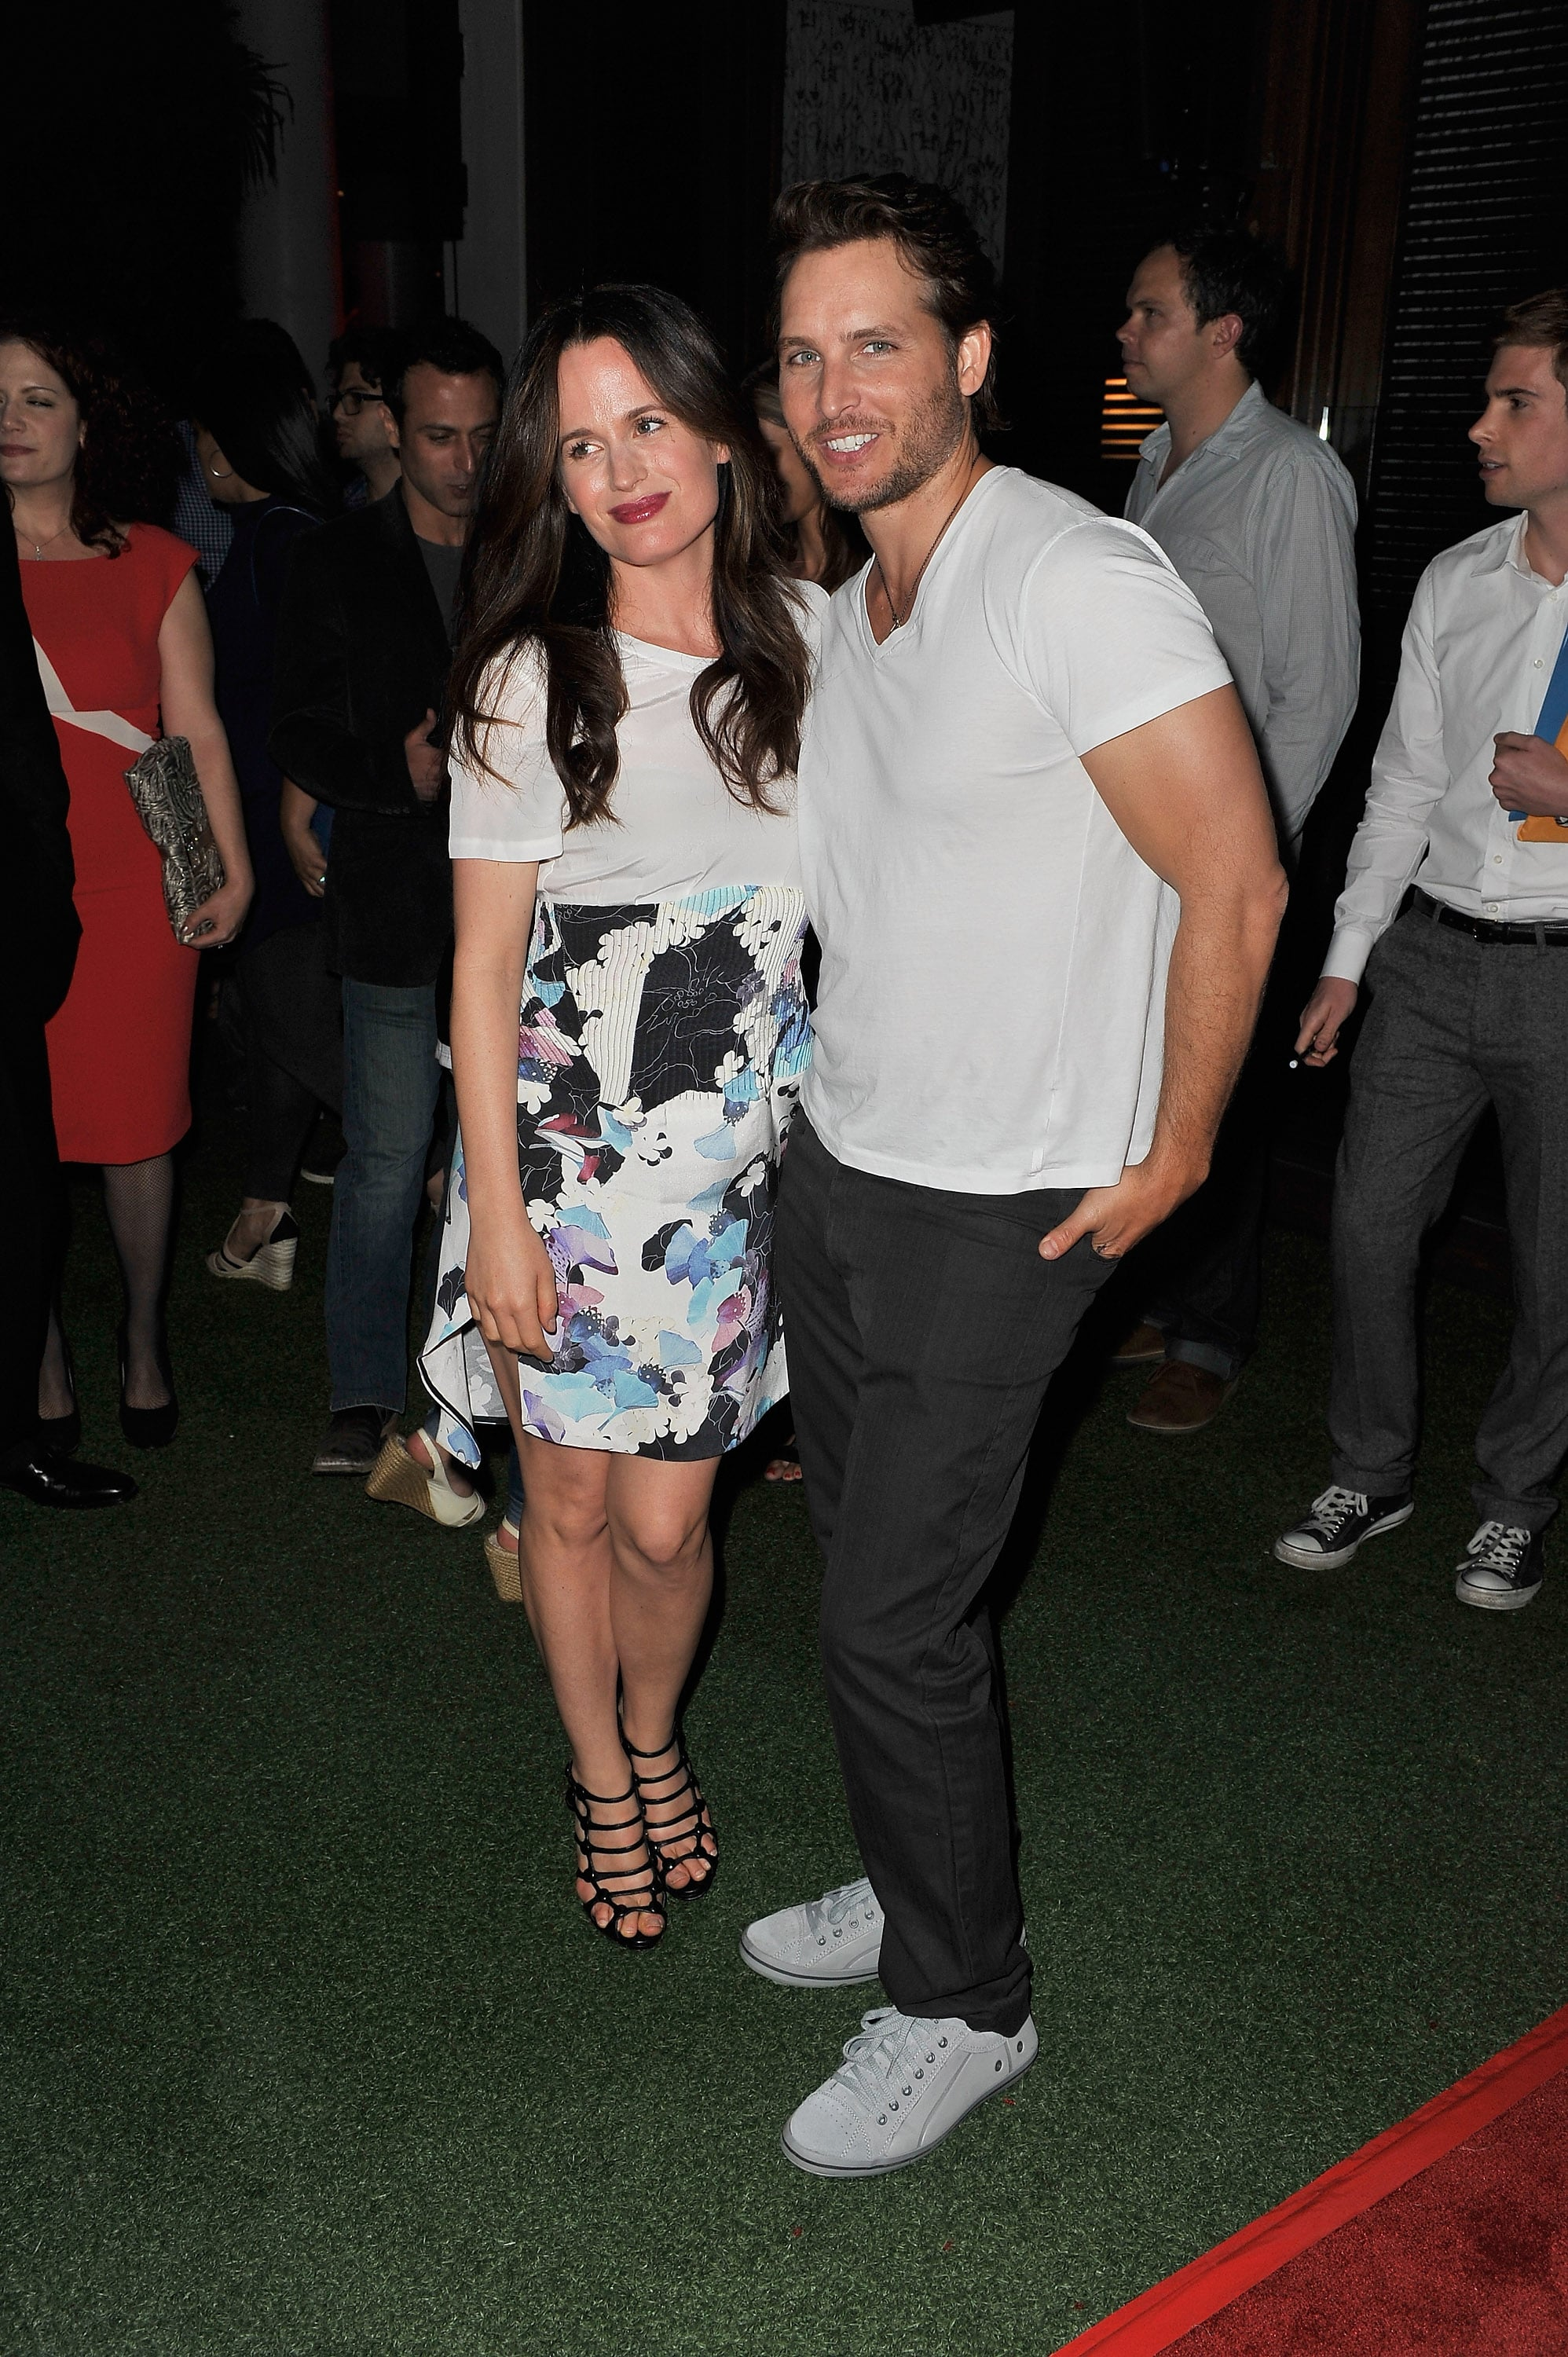 Peter Facinelli linked up with Elizabeth Reaser at the Breaking Dawn Part 2 party at Comic-Con.